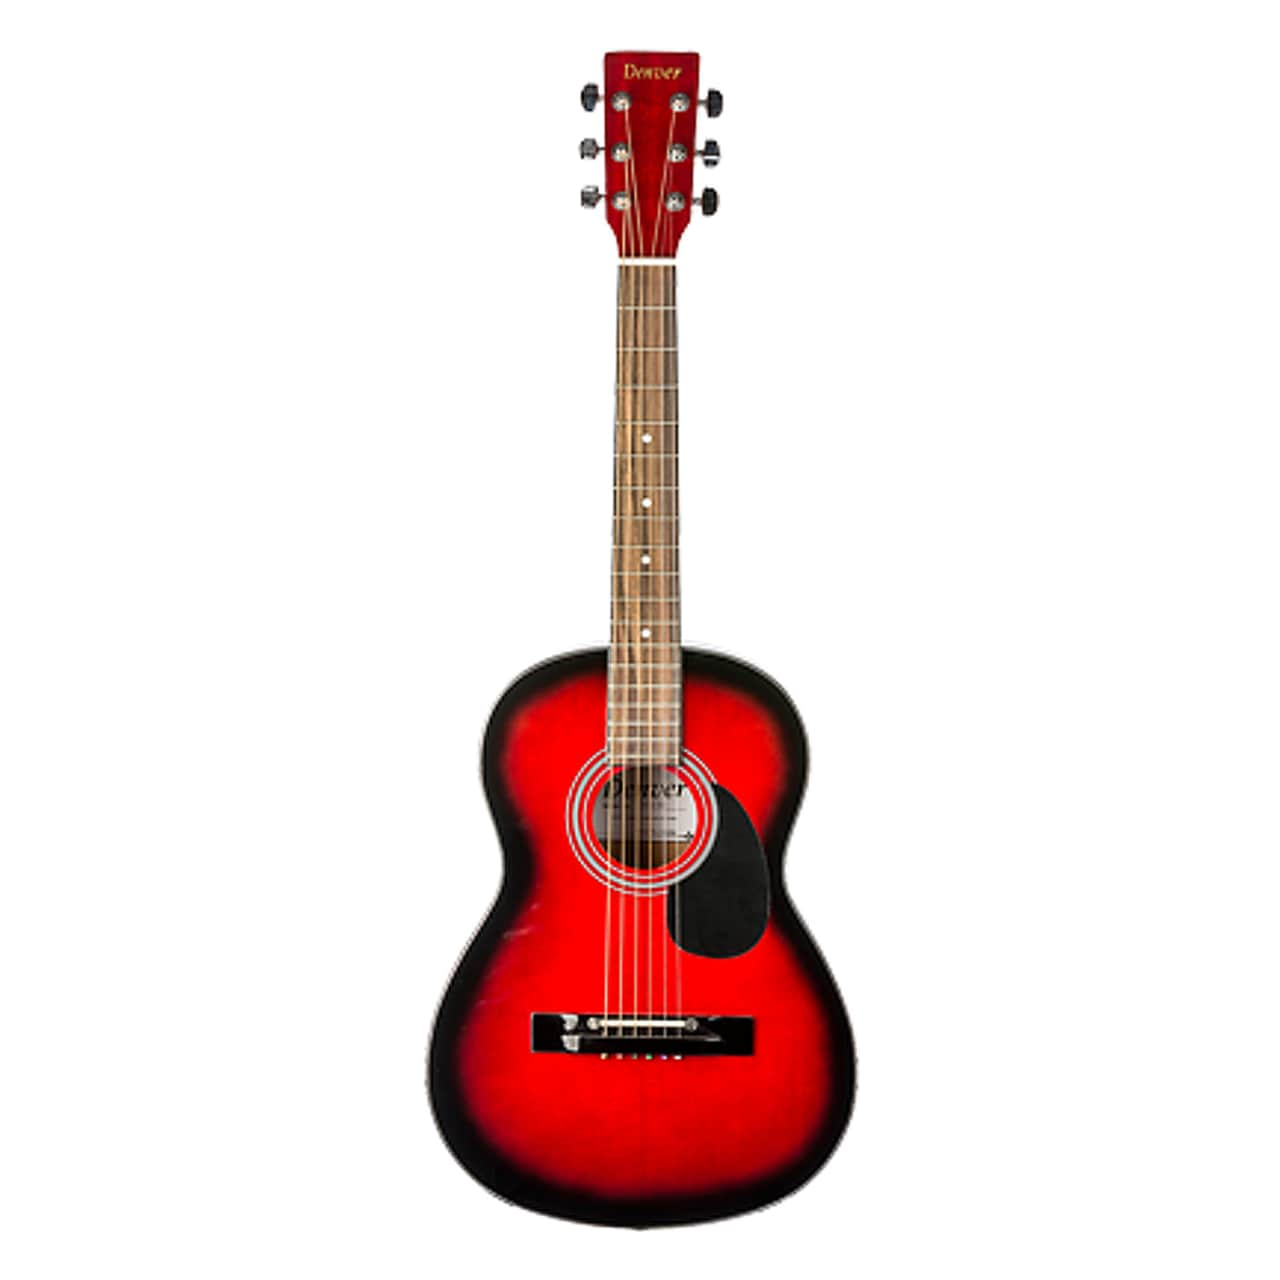 3 4 Size Acoustic Guitar : denver 3 4 size acoustic guitar red reverb ~ Hamham.info Haus und Dekorationen